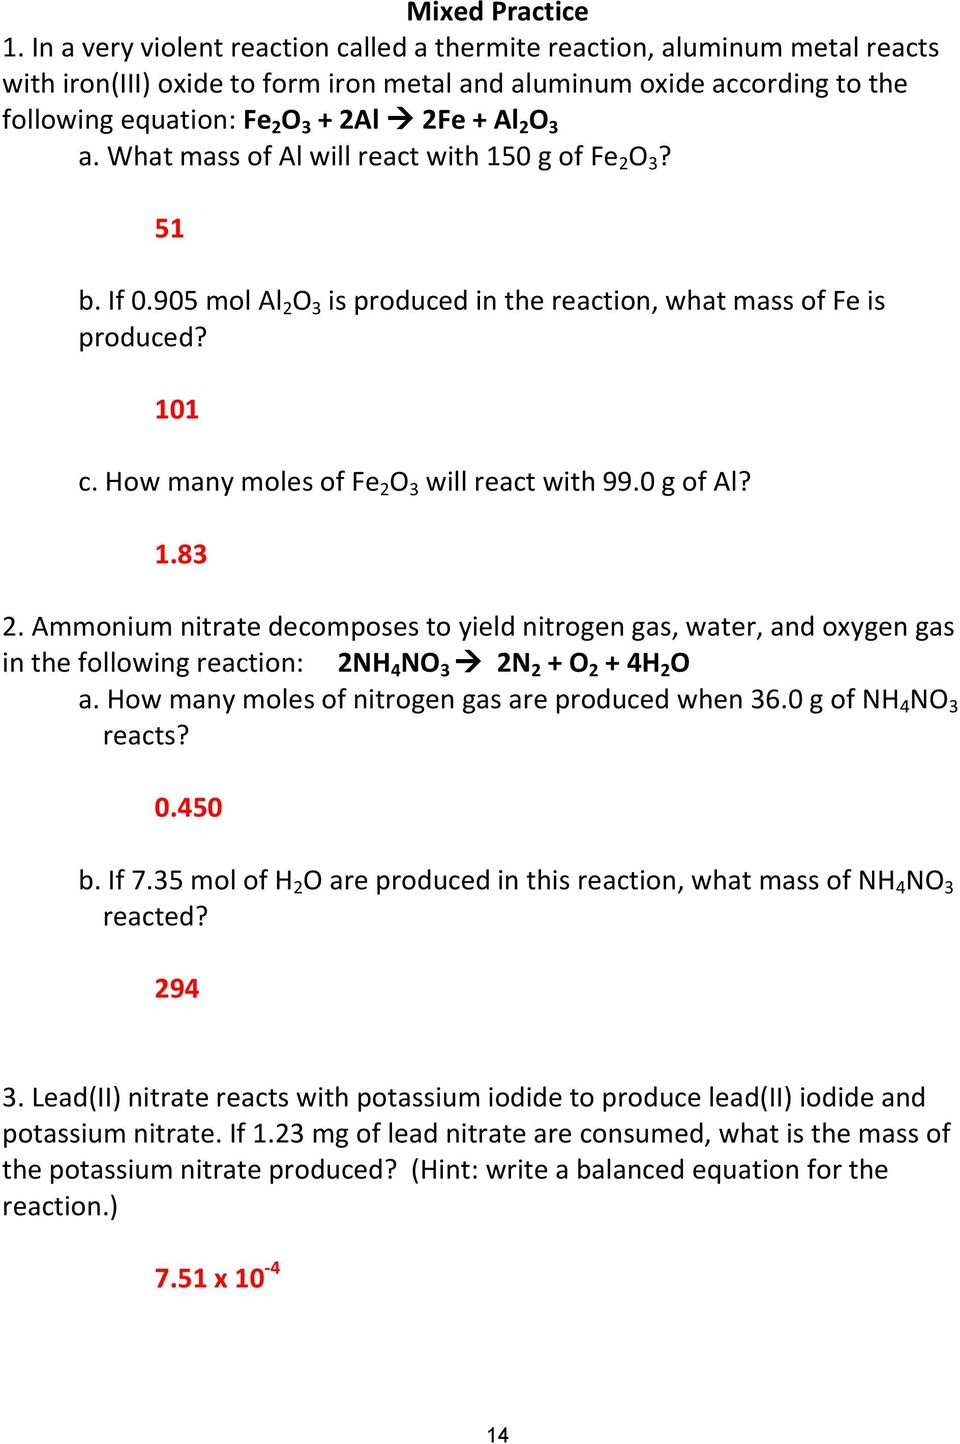 O 3 a. What mass of Al will react with 150 g of Fe 2 O 3? 51 b. If 0.905 mol Al 2 O 3 is produced in the reaction, what mass of Fe is produced? 101 c. How many moles of Fe 2 O 3 will react with 99.